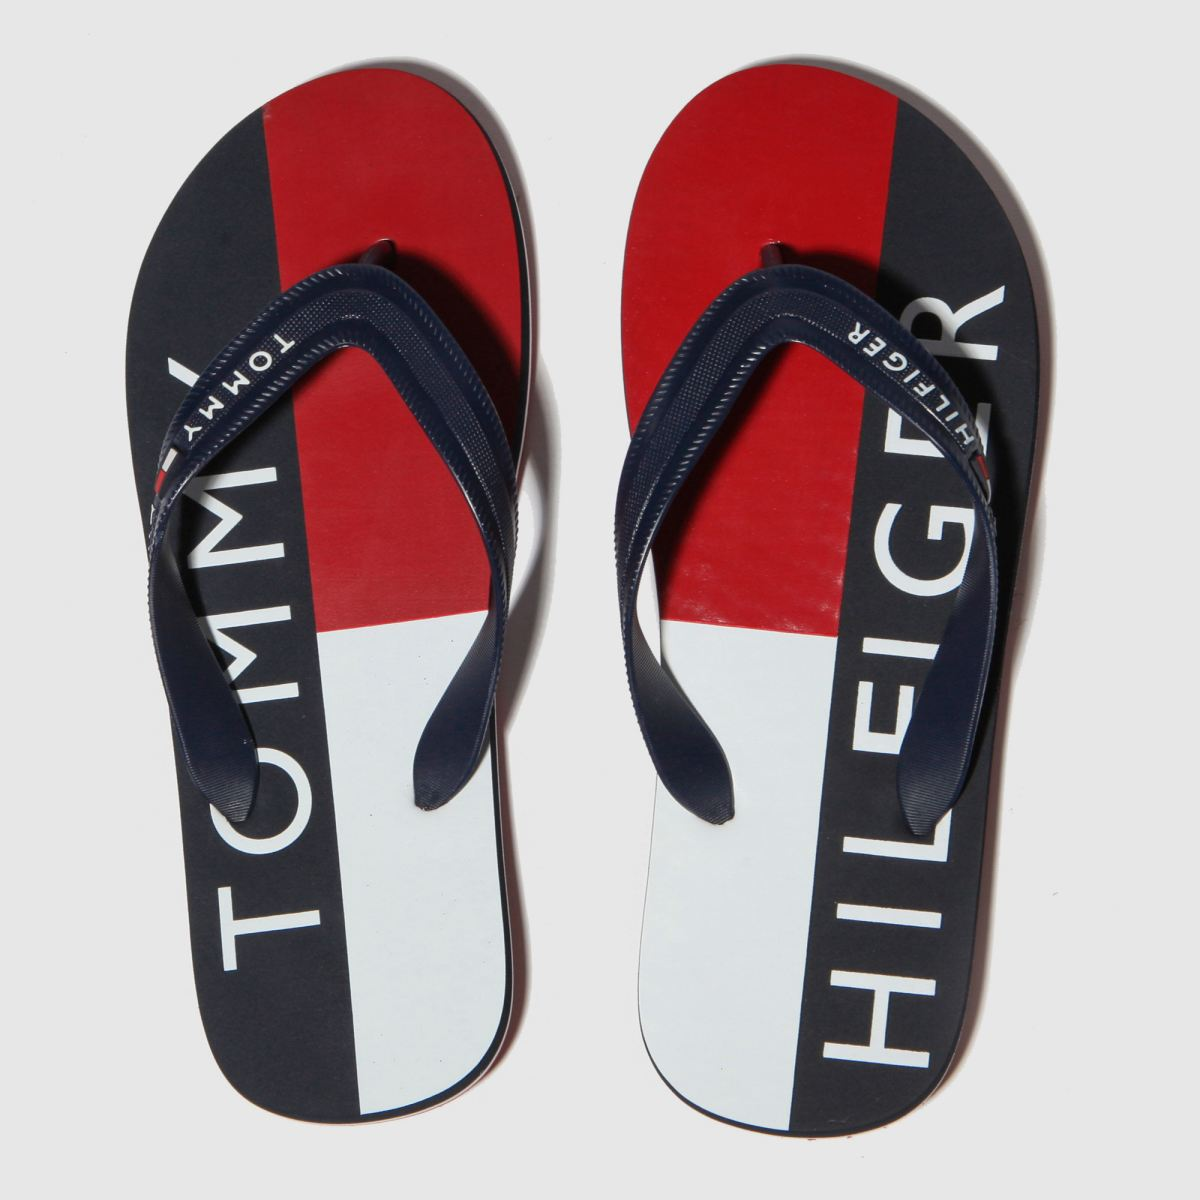 Tommy Hilfiger Navy & Red Printed Beach Sandal Sandals